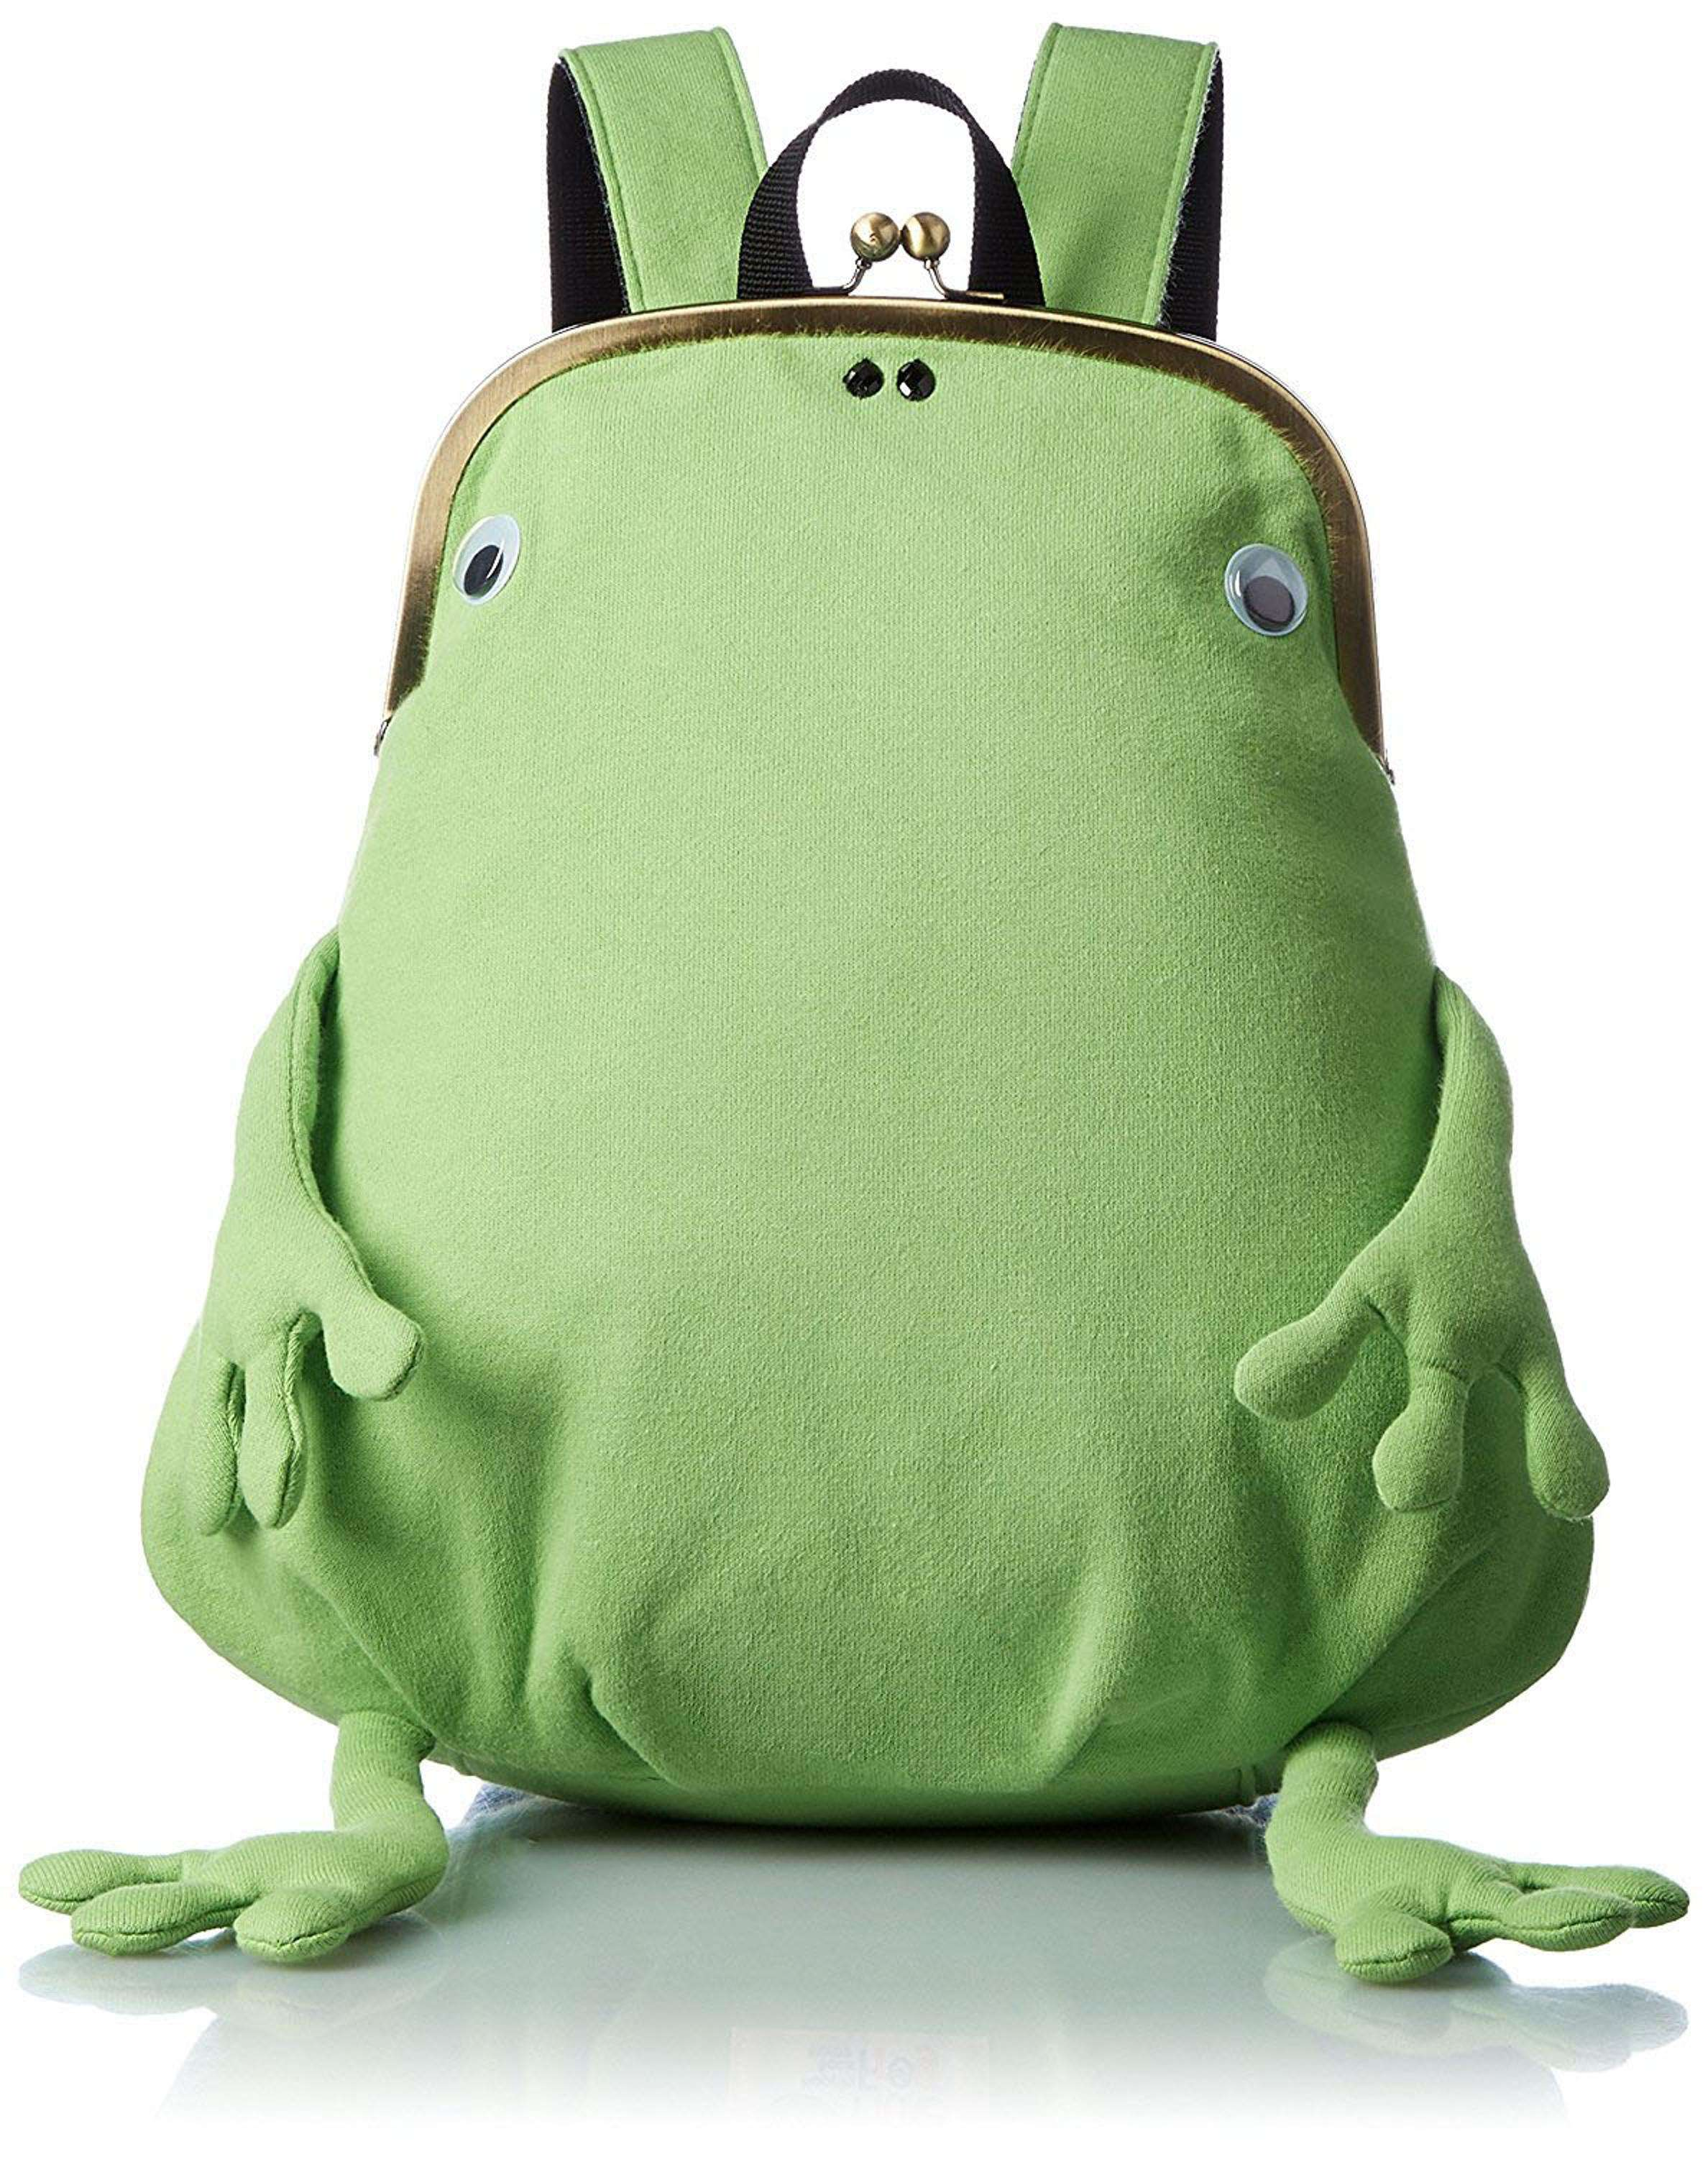 frog chicken small cute animal backpack for kids